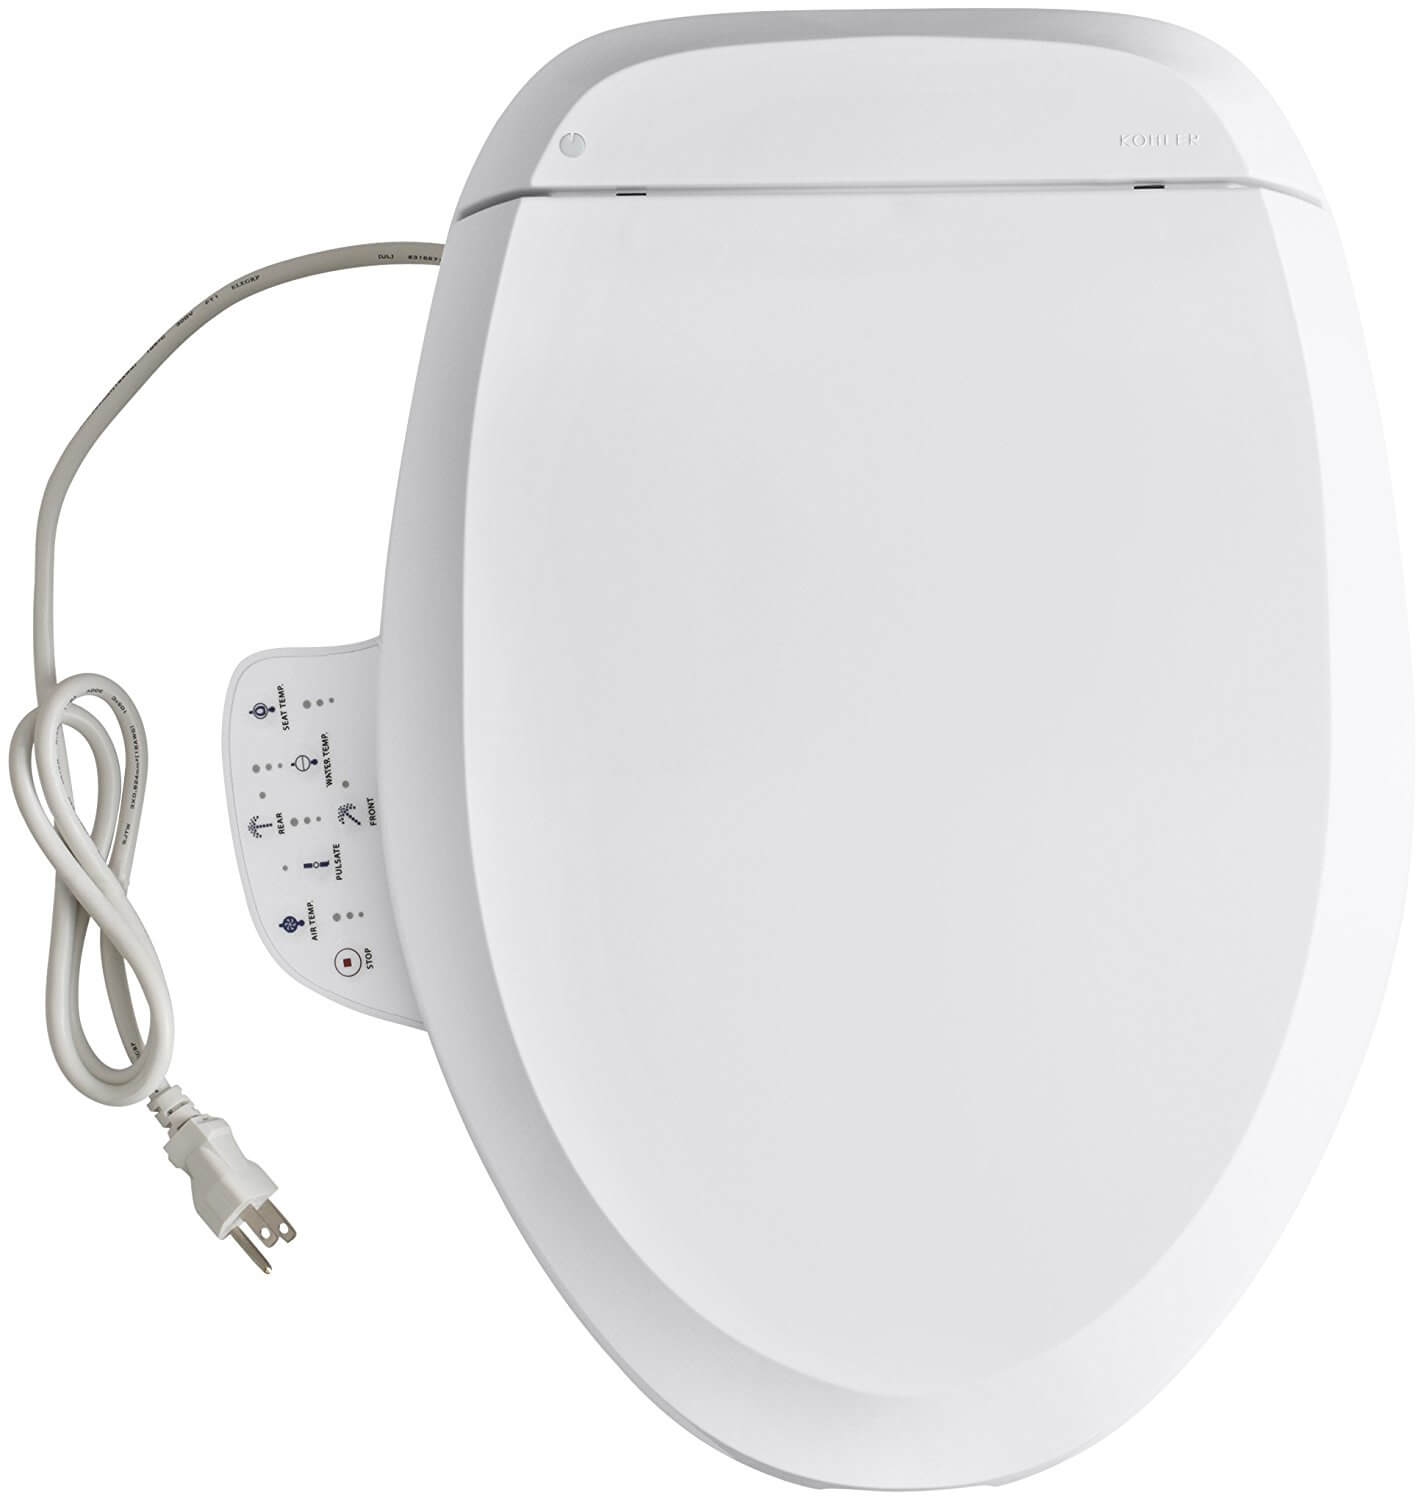 KOHLER K-4737-0 C3-125 Elongated Bidet Toilet Seat